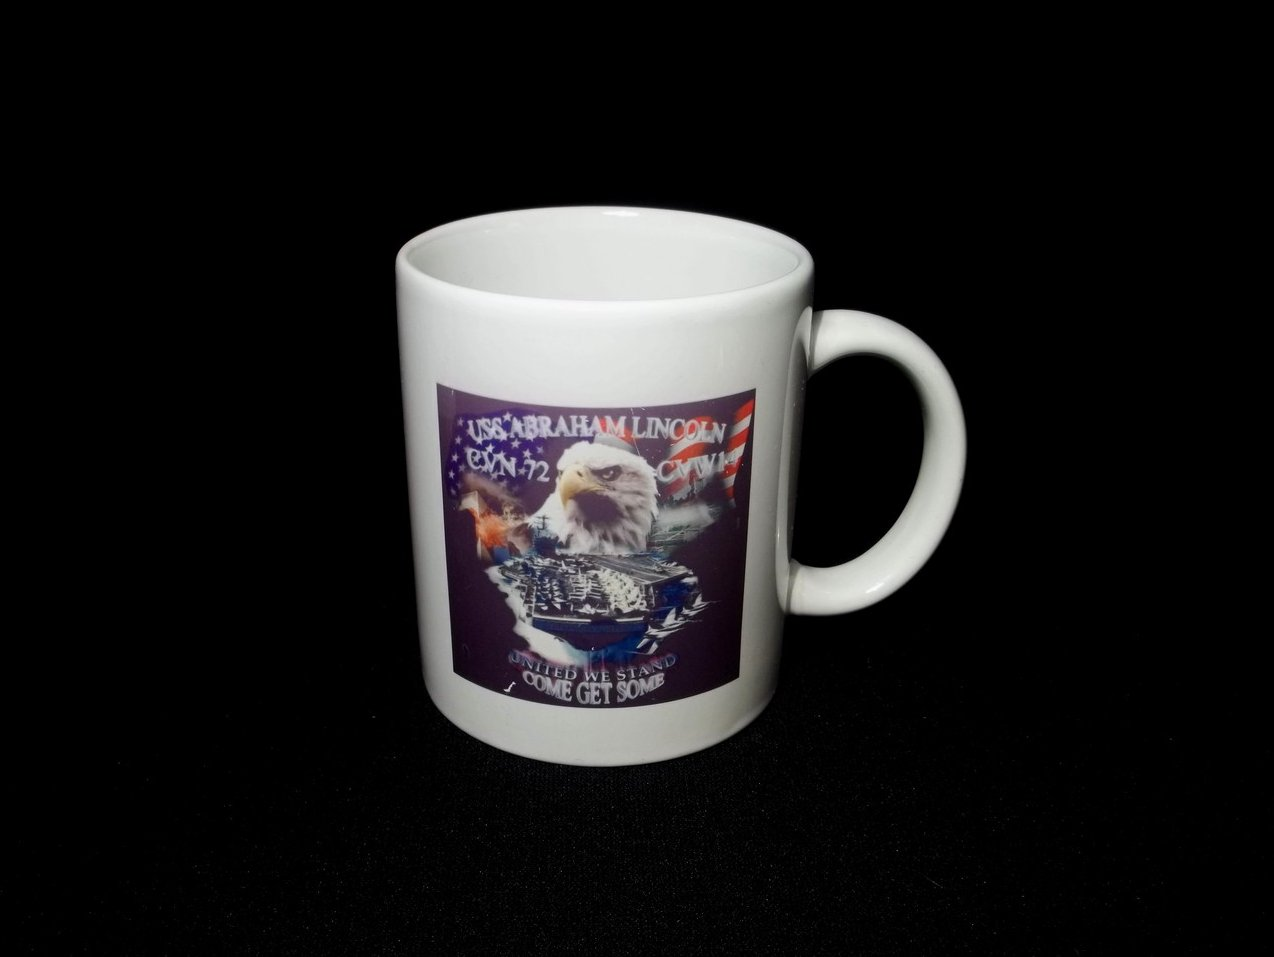 Image 3 of USS Abraham Lincoln CVN-72 Coffee Mug 12 Oz